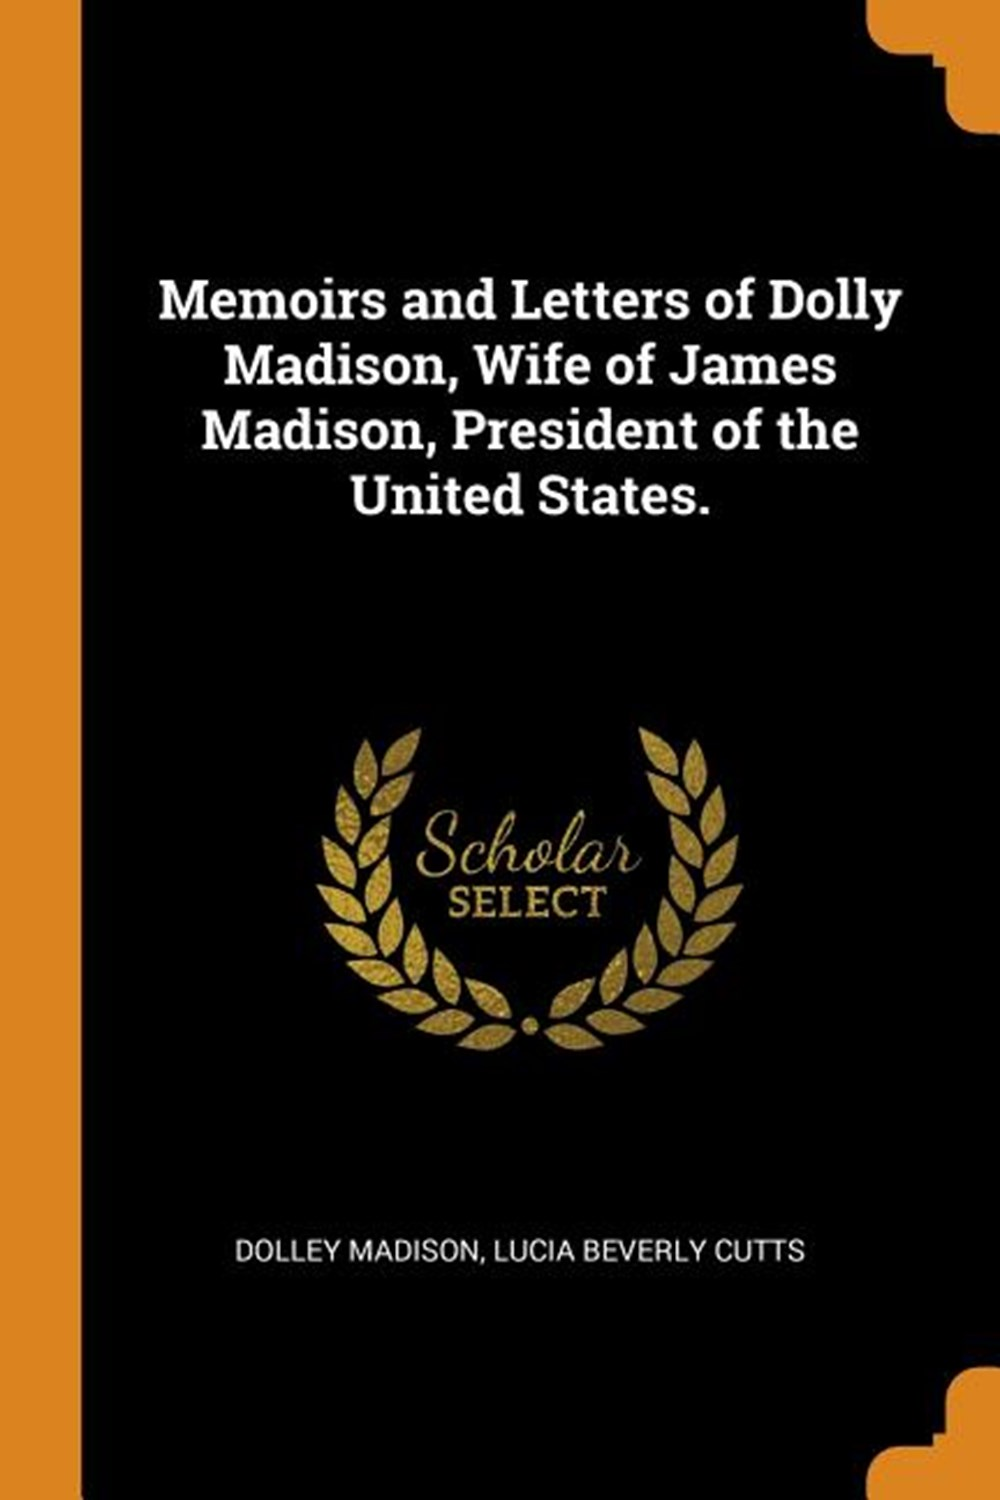 Memoirs and Letters of Dolly Madison, Wife of James Madison, President of the United States.